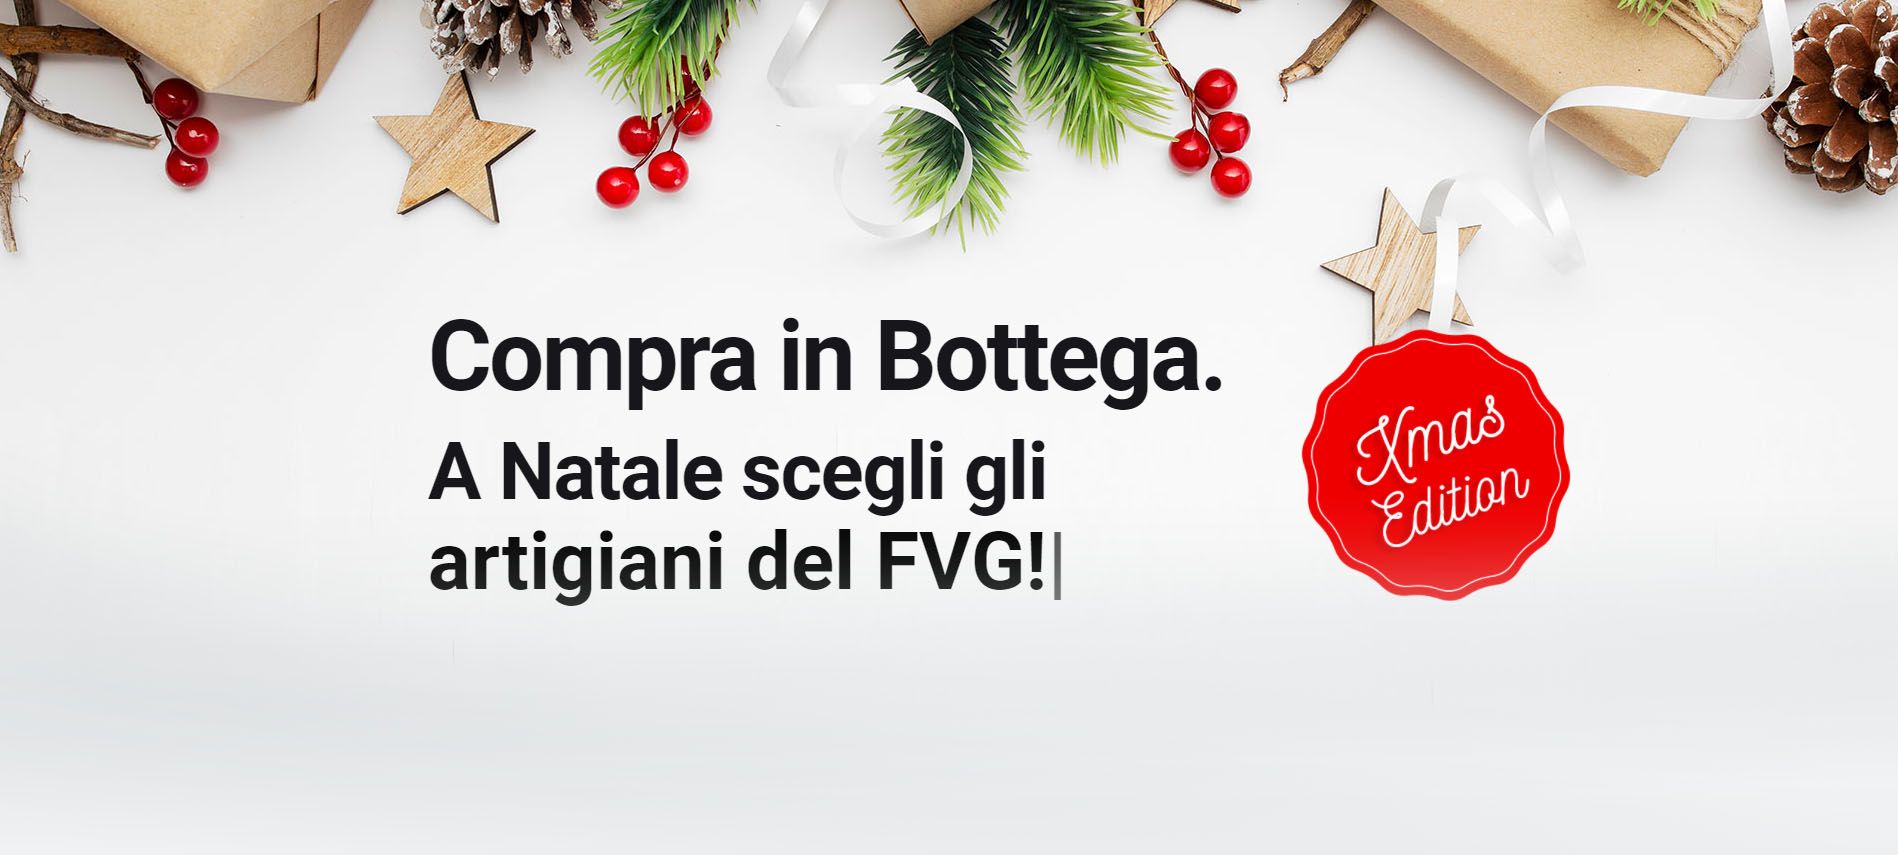 A Natale compra in bottega FVG